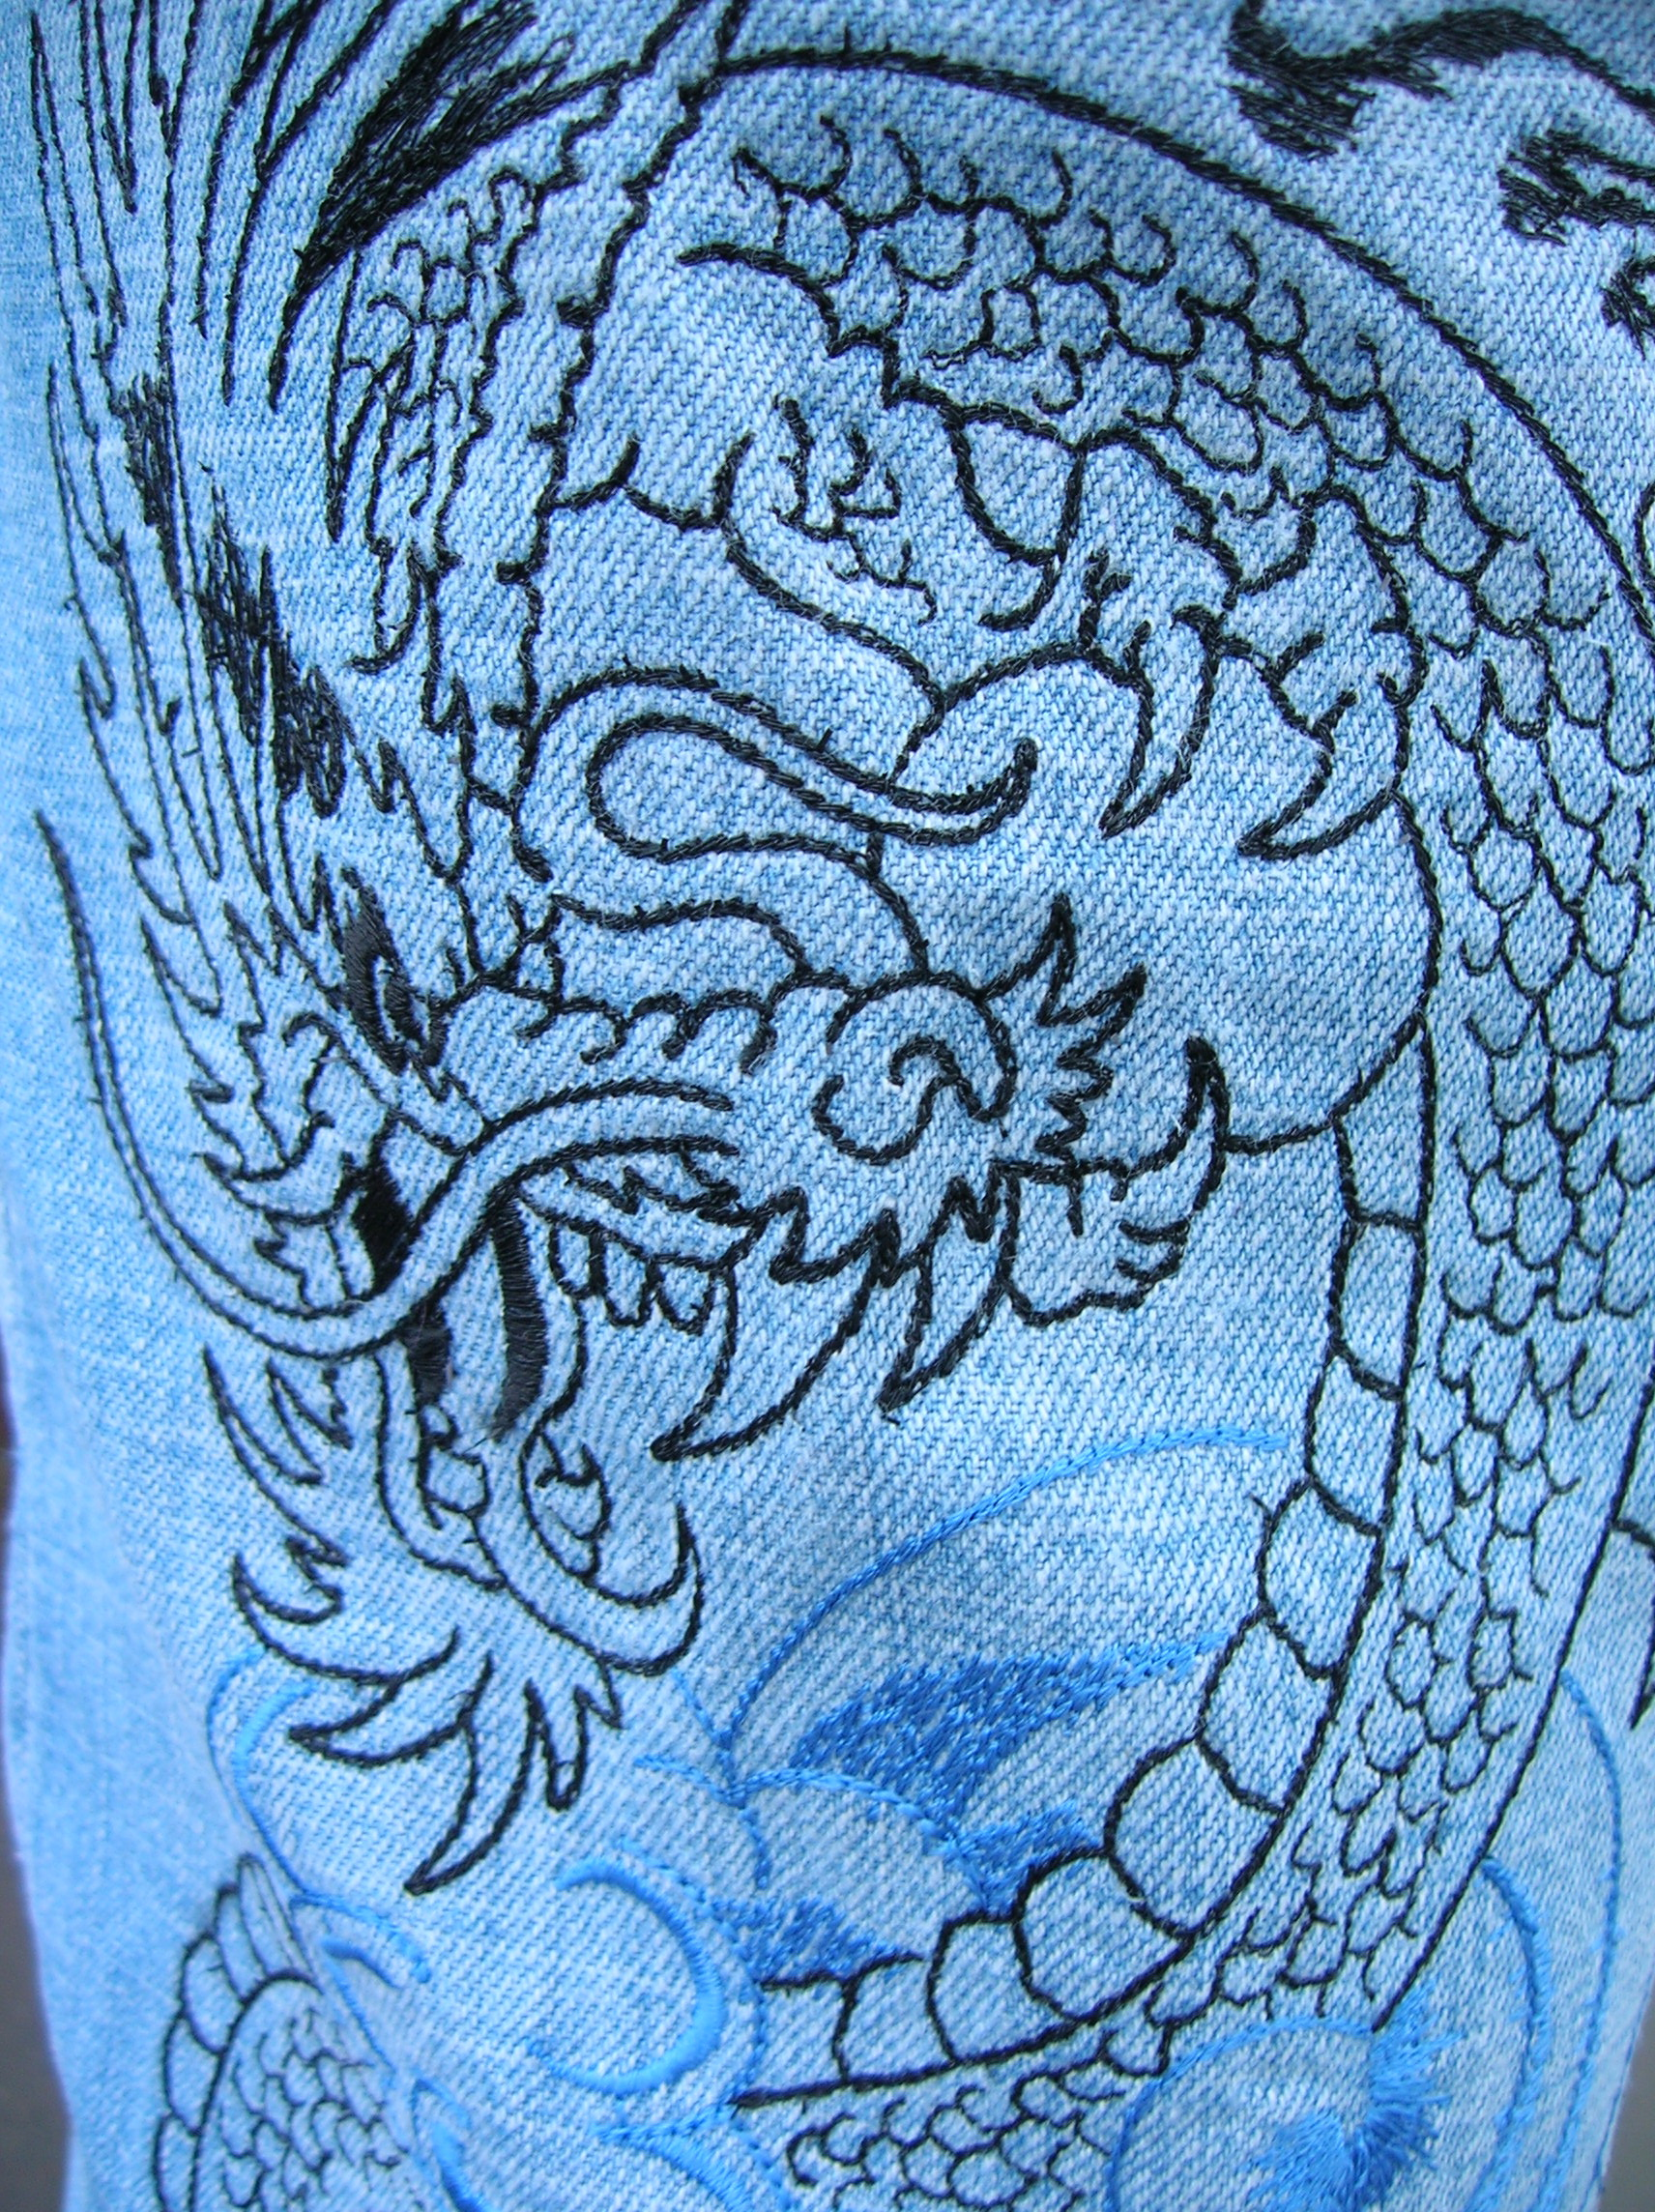 Forward Dragon Backstitch Style Embroidery Design  3